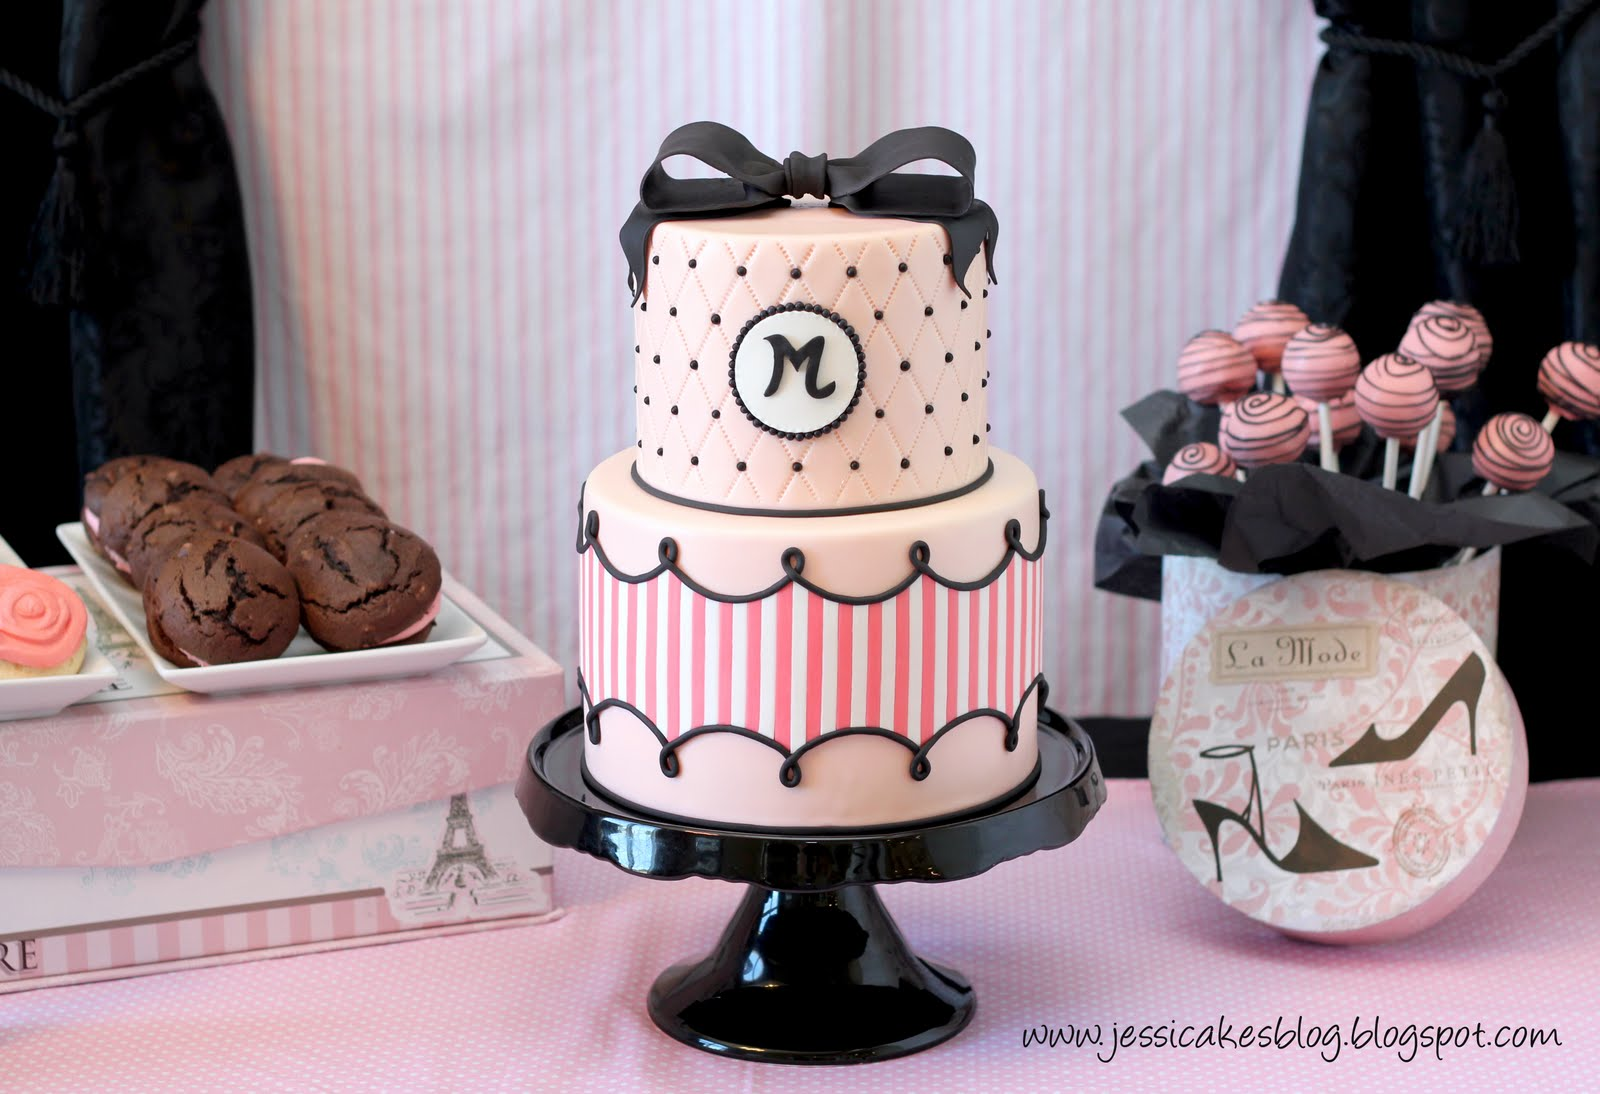 Maddie's Fashion Birthday Cake - Jessica Harris Cake Design